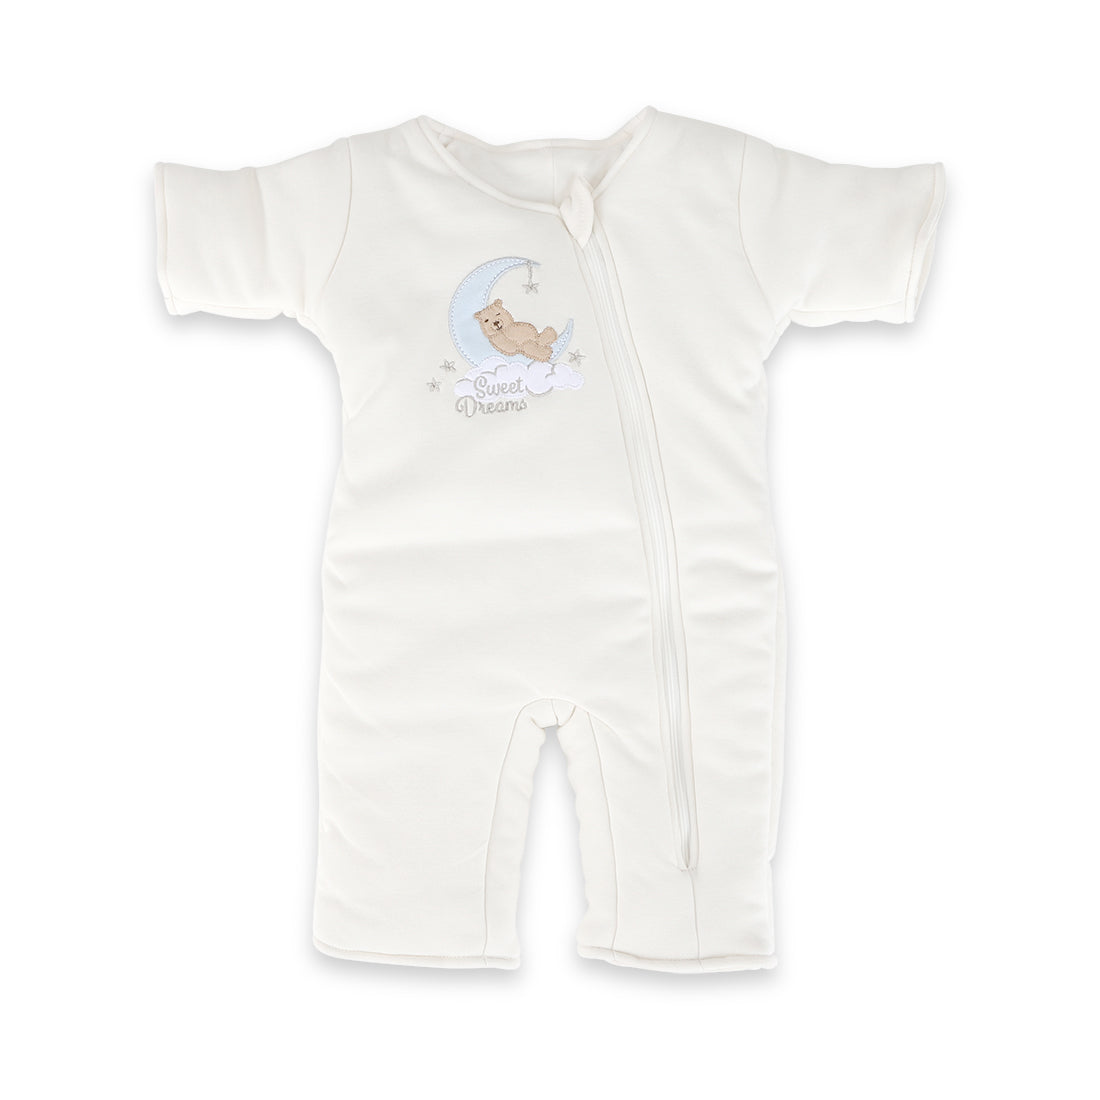 Tranquilo Miracle Baby Sleepsuit